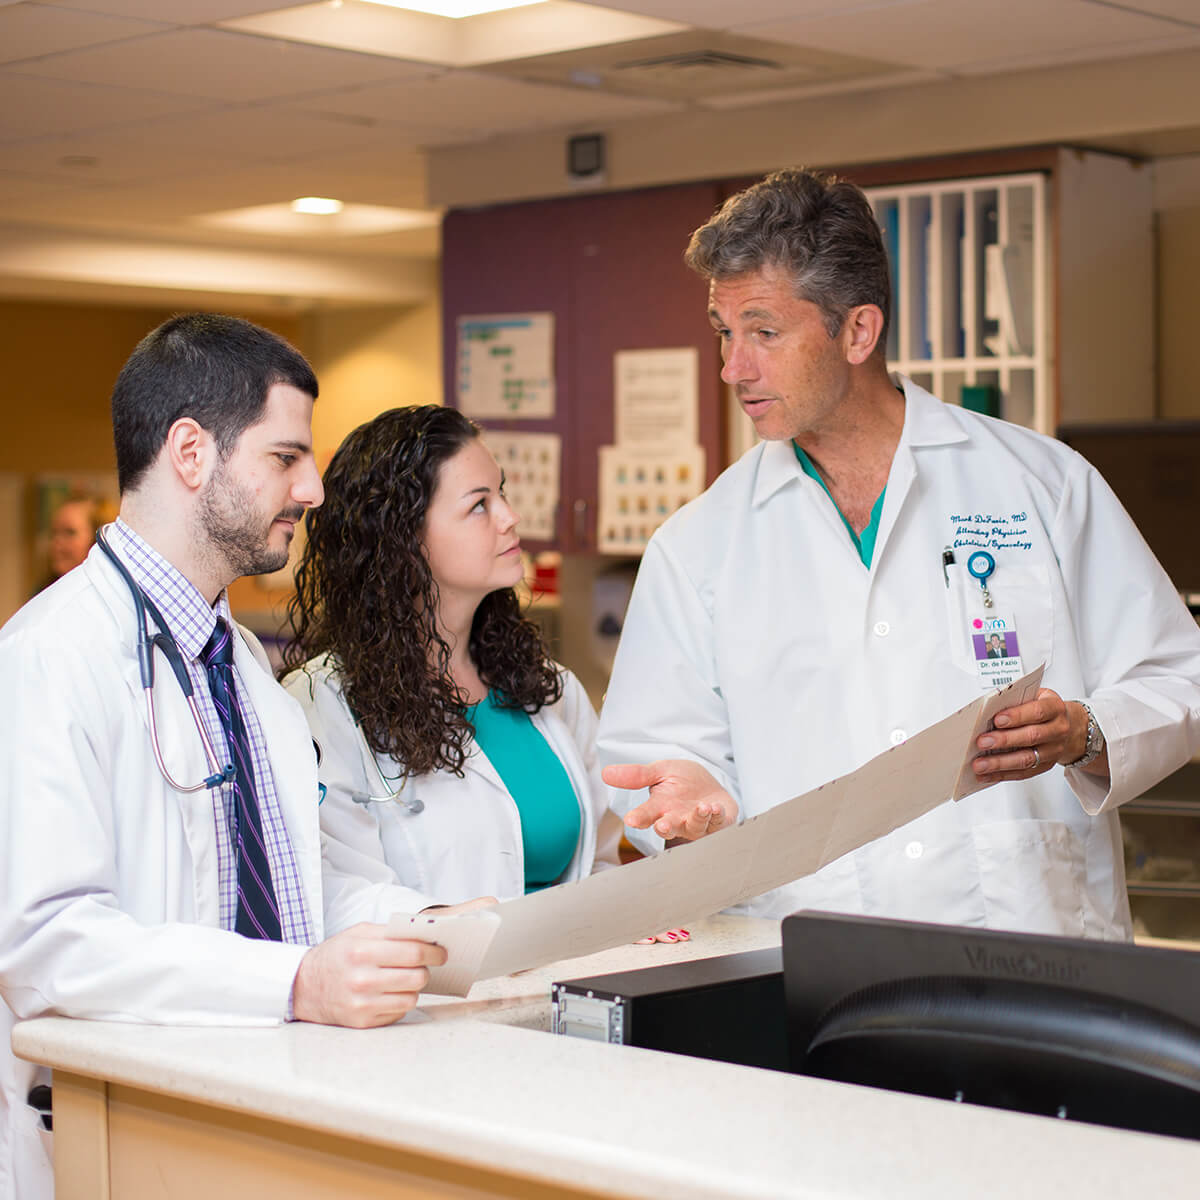 Two physician trainees listen to their supervising physician in a hospital hallway.